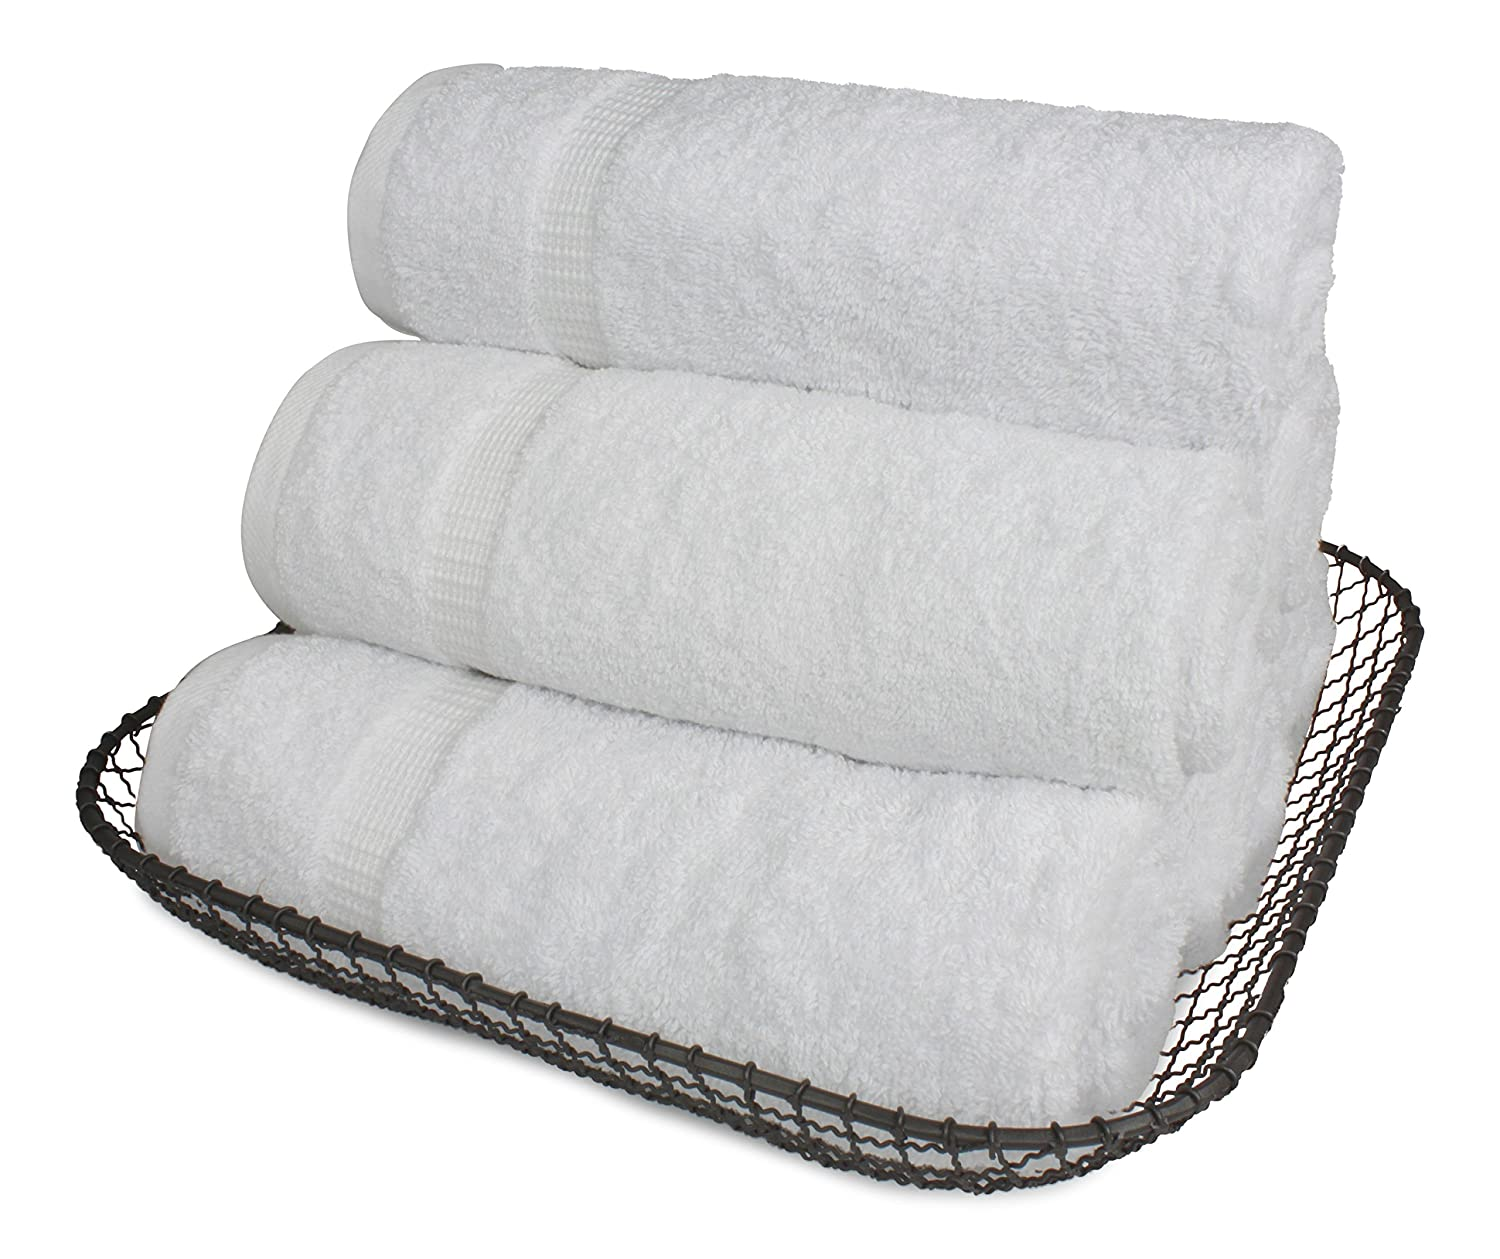 SALBAKOS Luxury Hotel & Spa Turkish Cotton 6-Piece Eco-Friendly Hand Towel Set